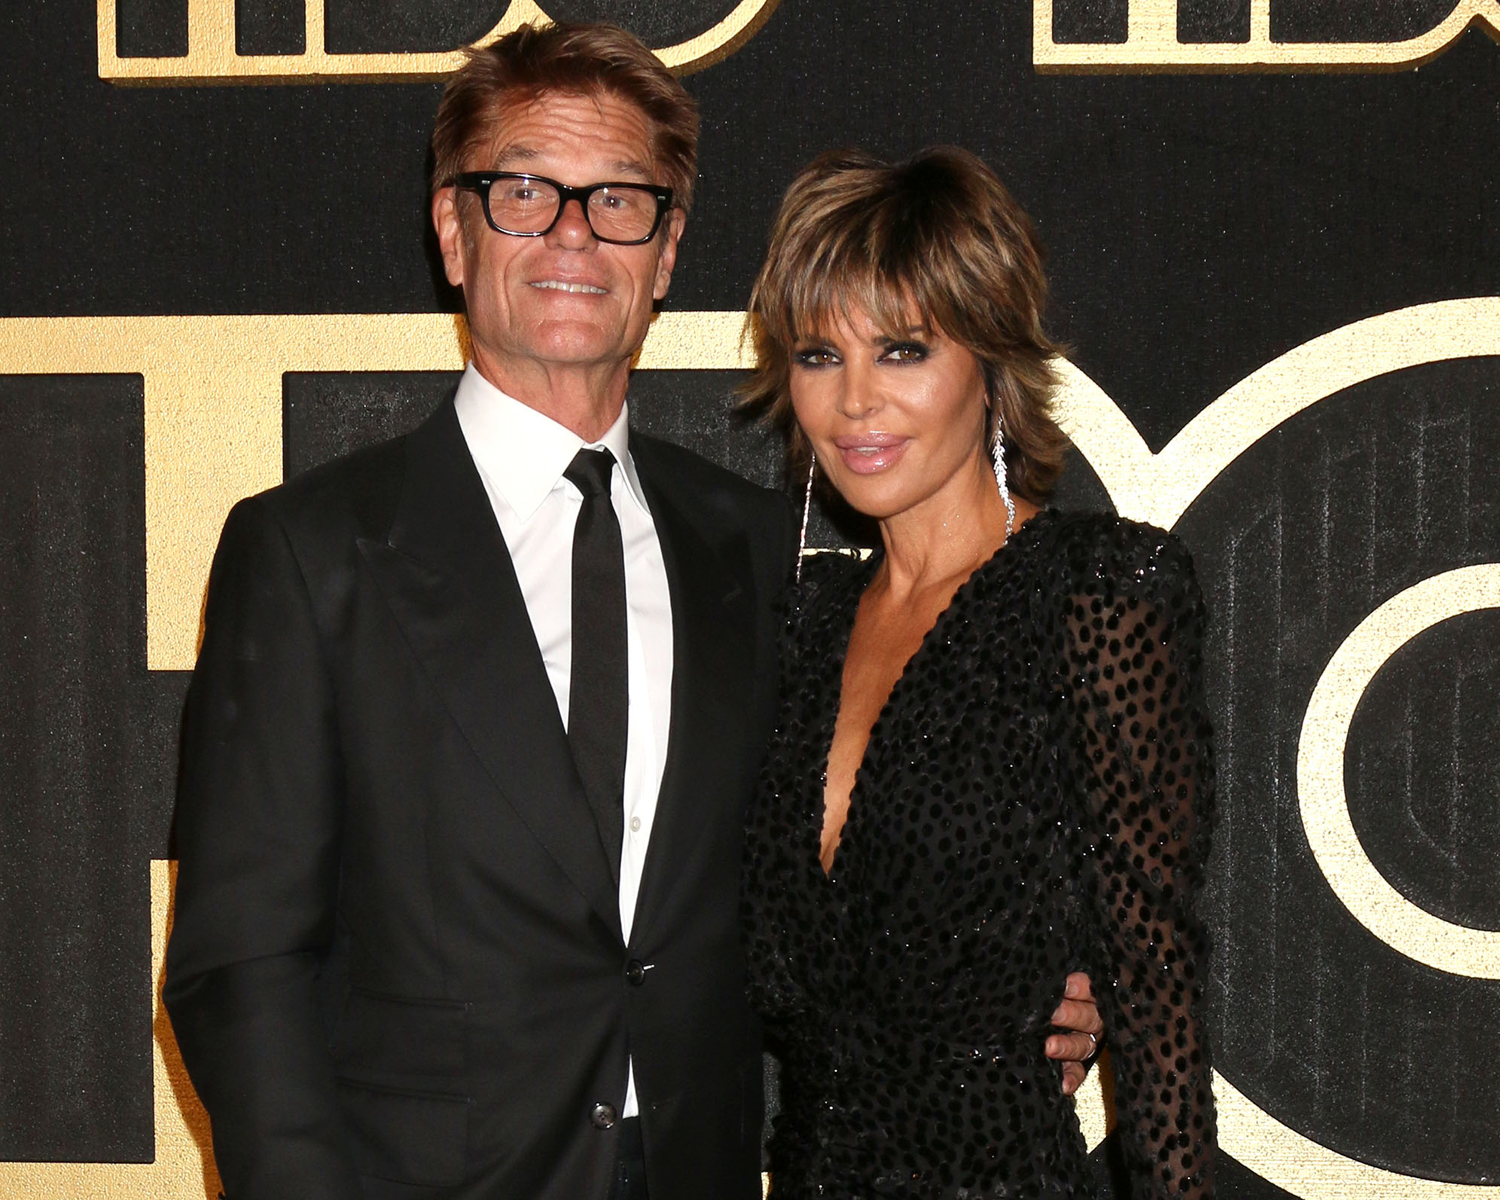 Lisa Rinna and Harry Hamlin's 22nd Anniversary Celebration Will Involve Baby Whales